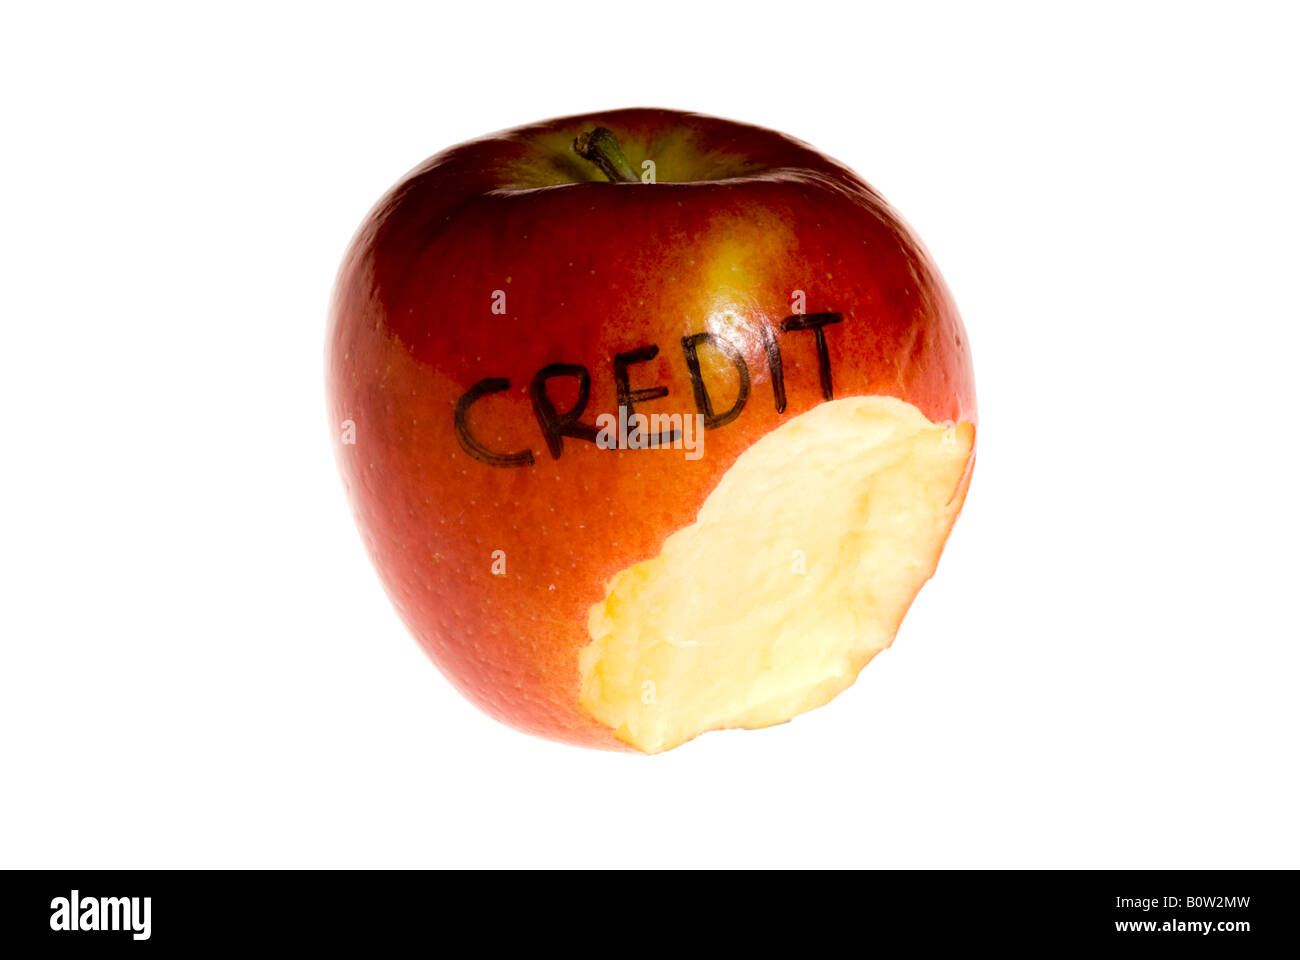 An apple with a large bite out of it and the words credit  written on it. Stock Photo